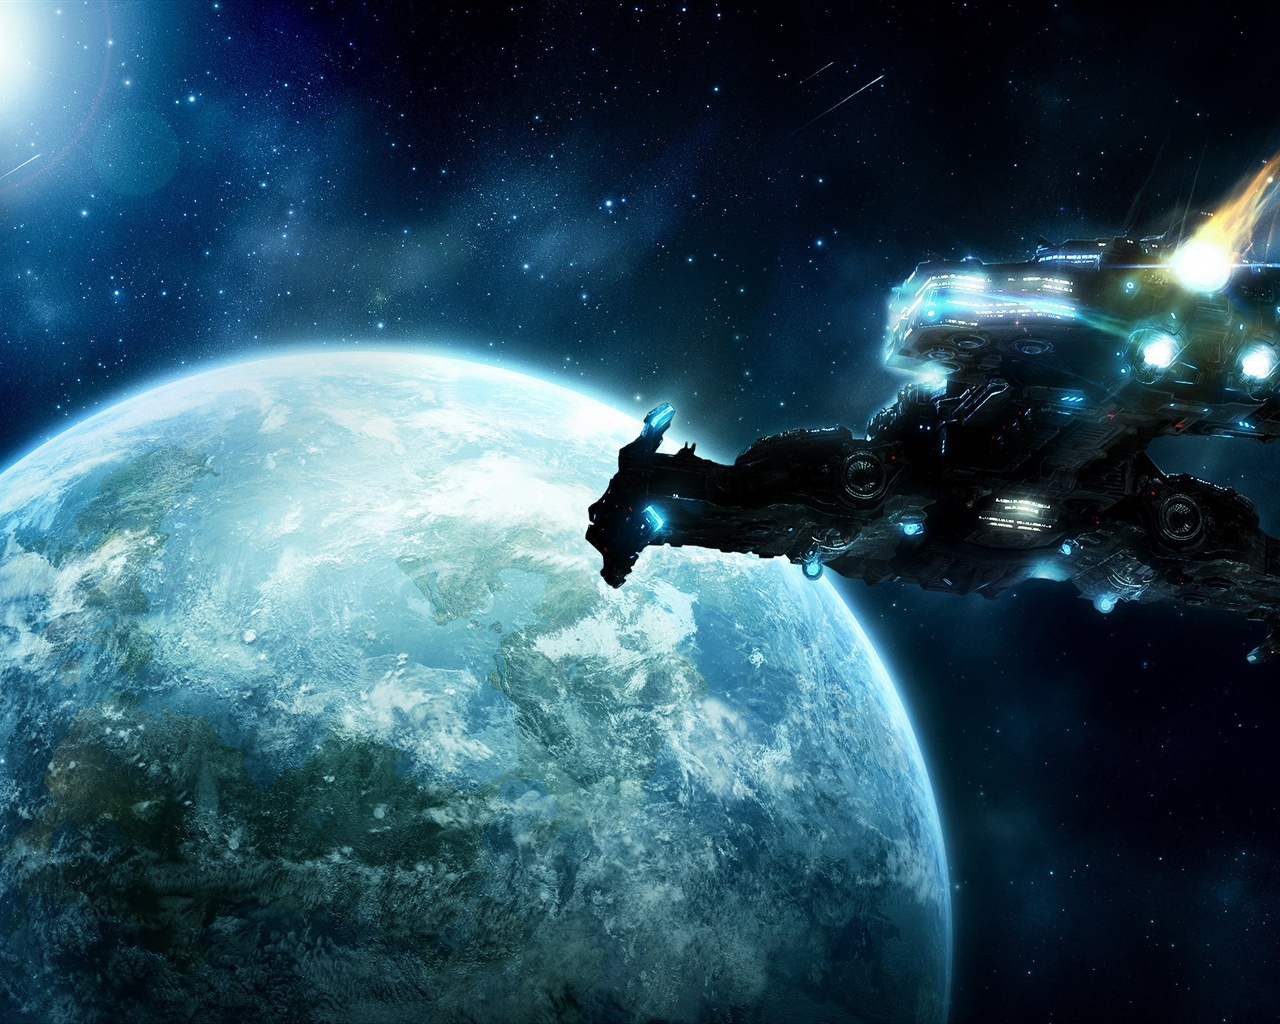 Original Iphone Wallpaper Earth Wallpaper Spaceship Flying To The Earth 2560x1600 Hd